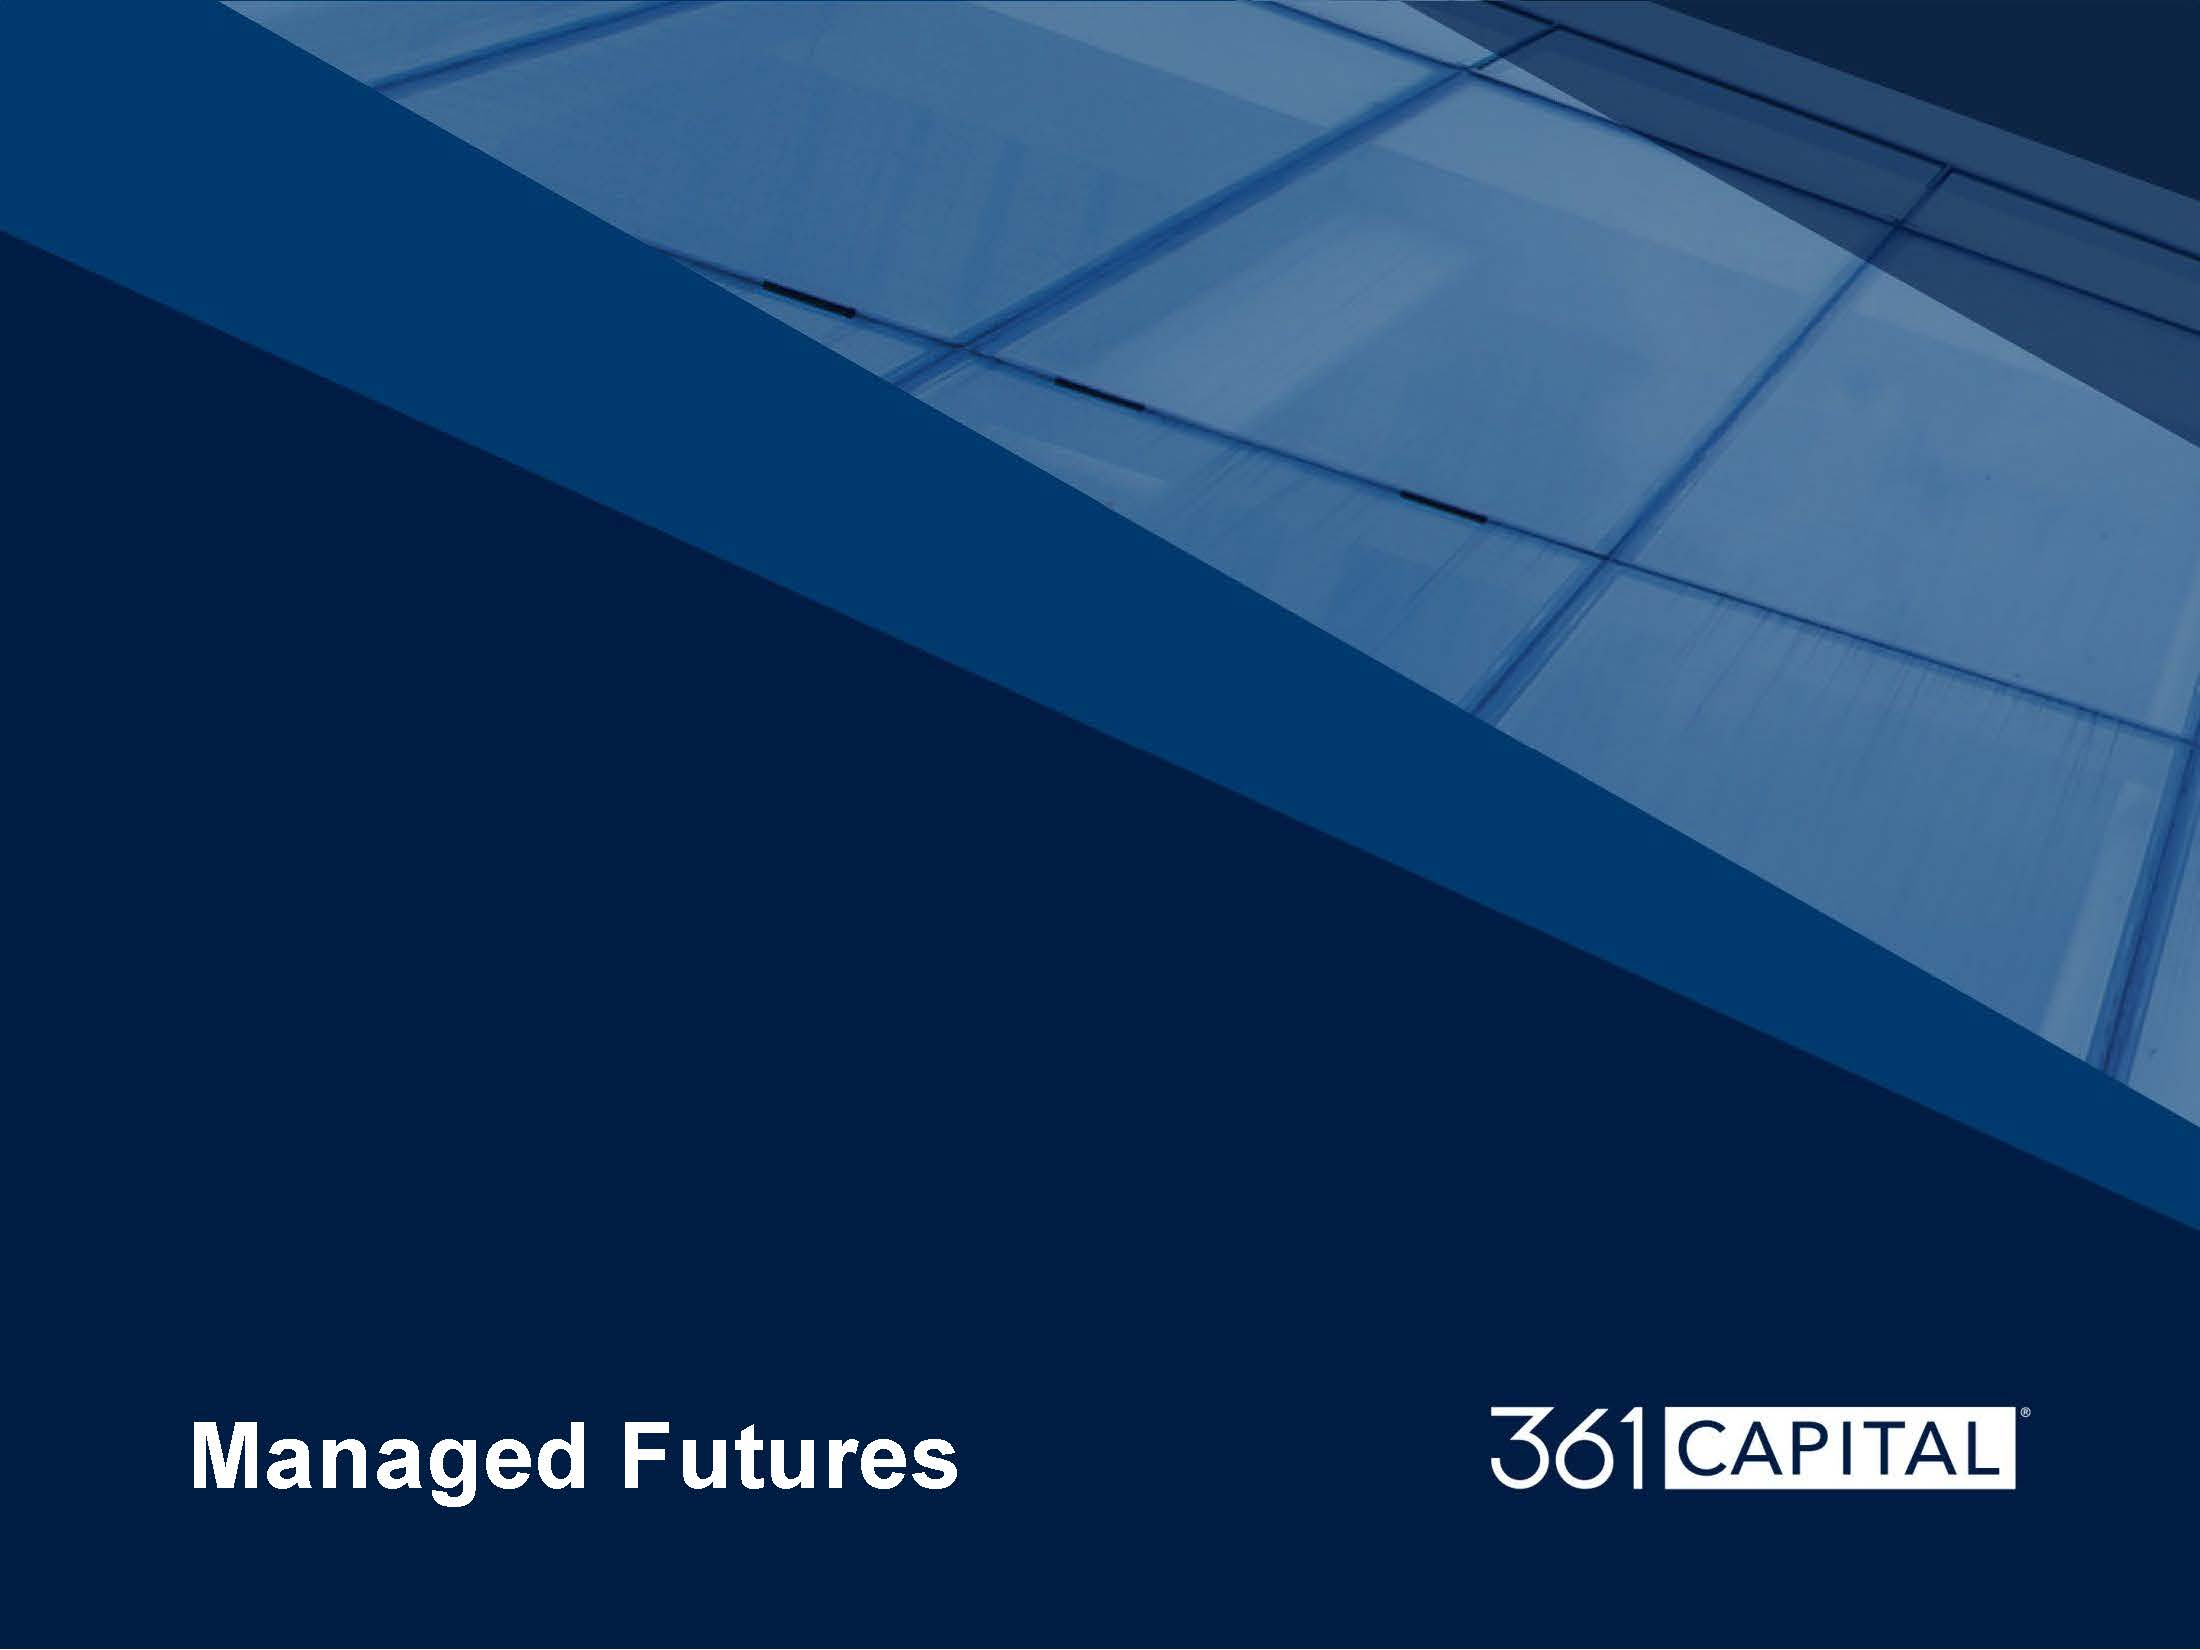 Managed Futures Intro Page